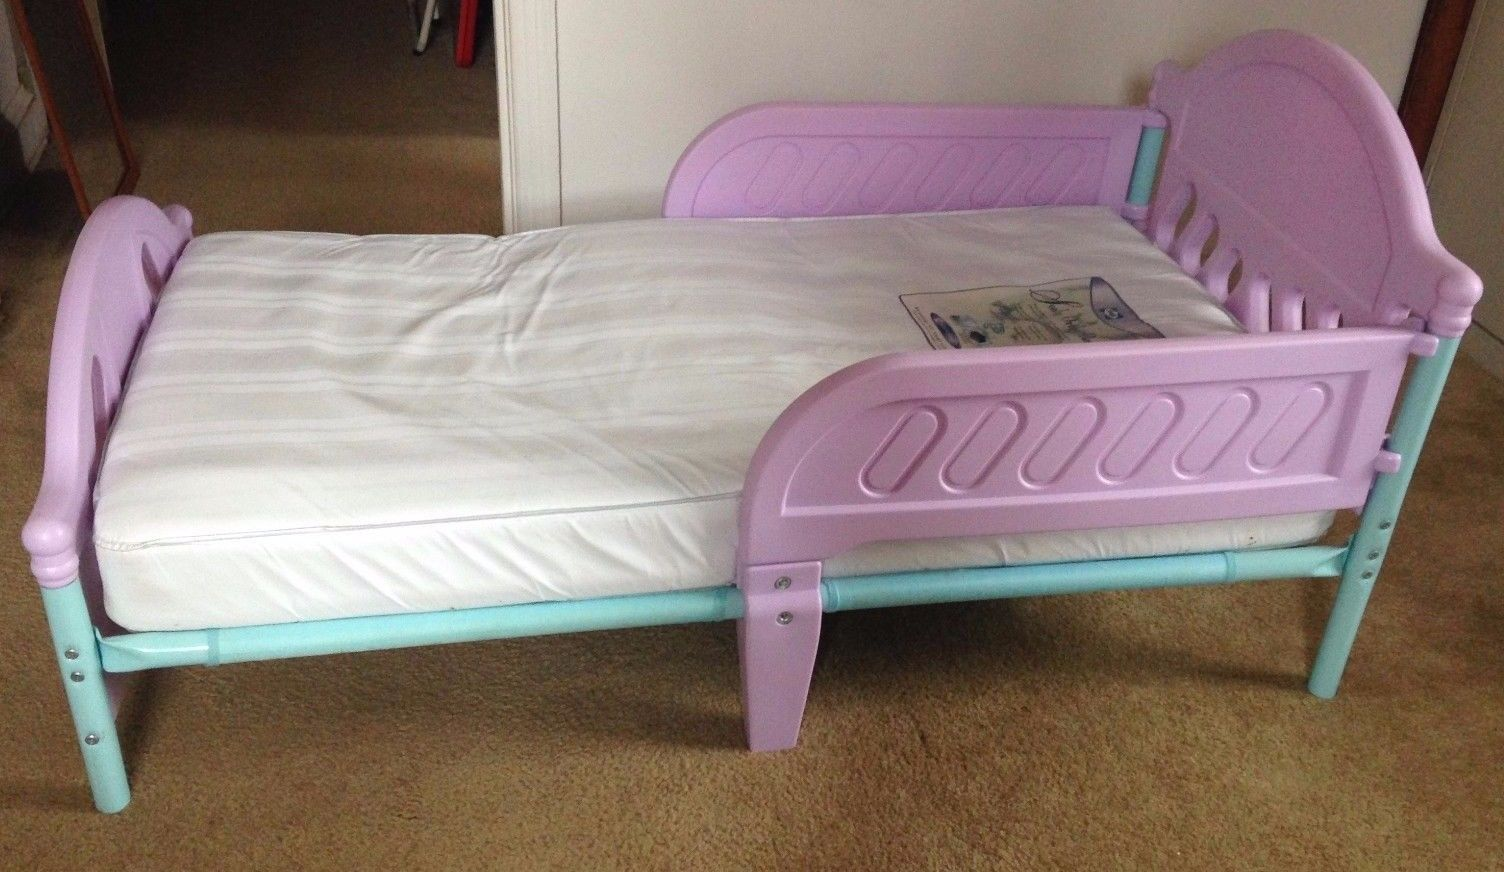 low priced f5d43 3c99d Purple toddler bed with mattress | Junk Mail